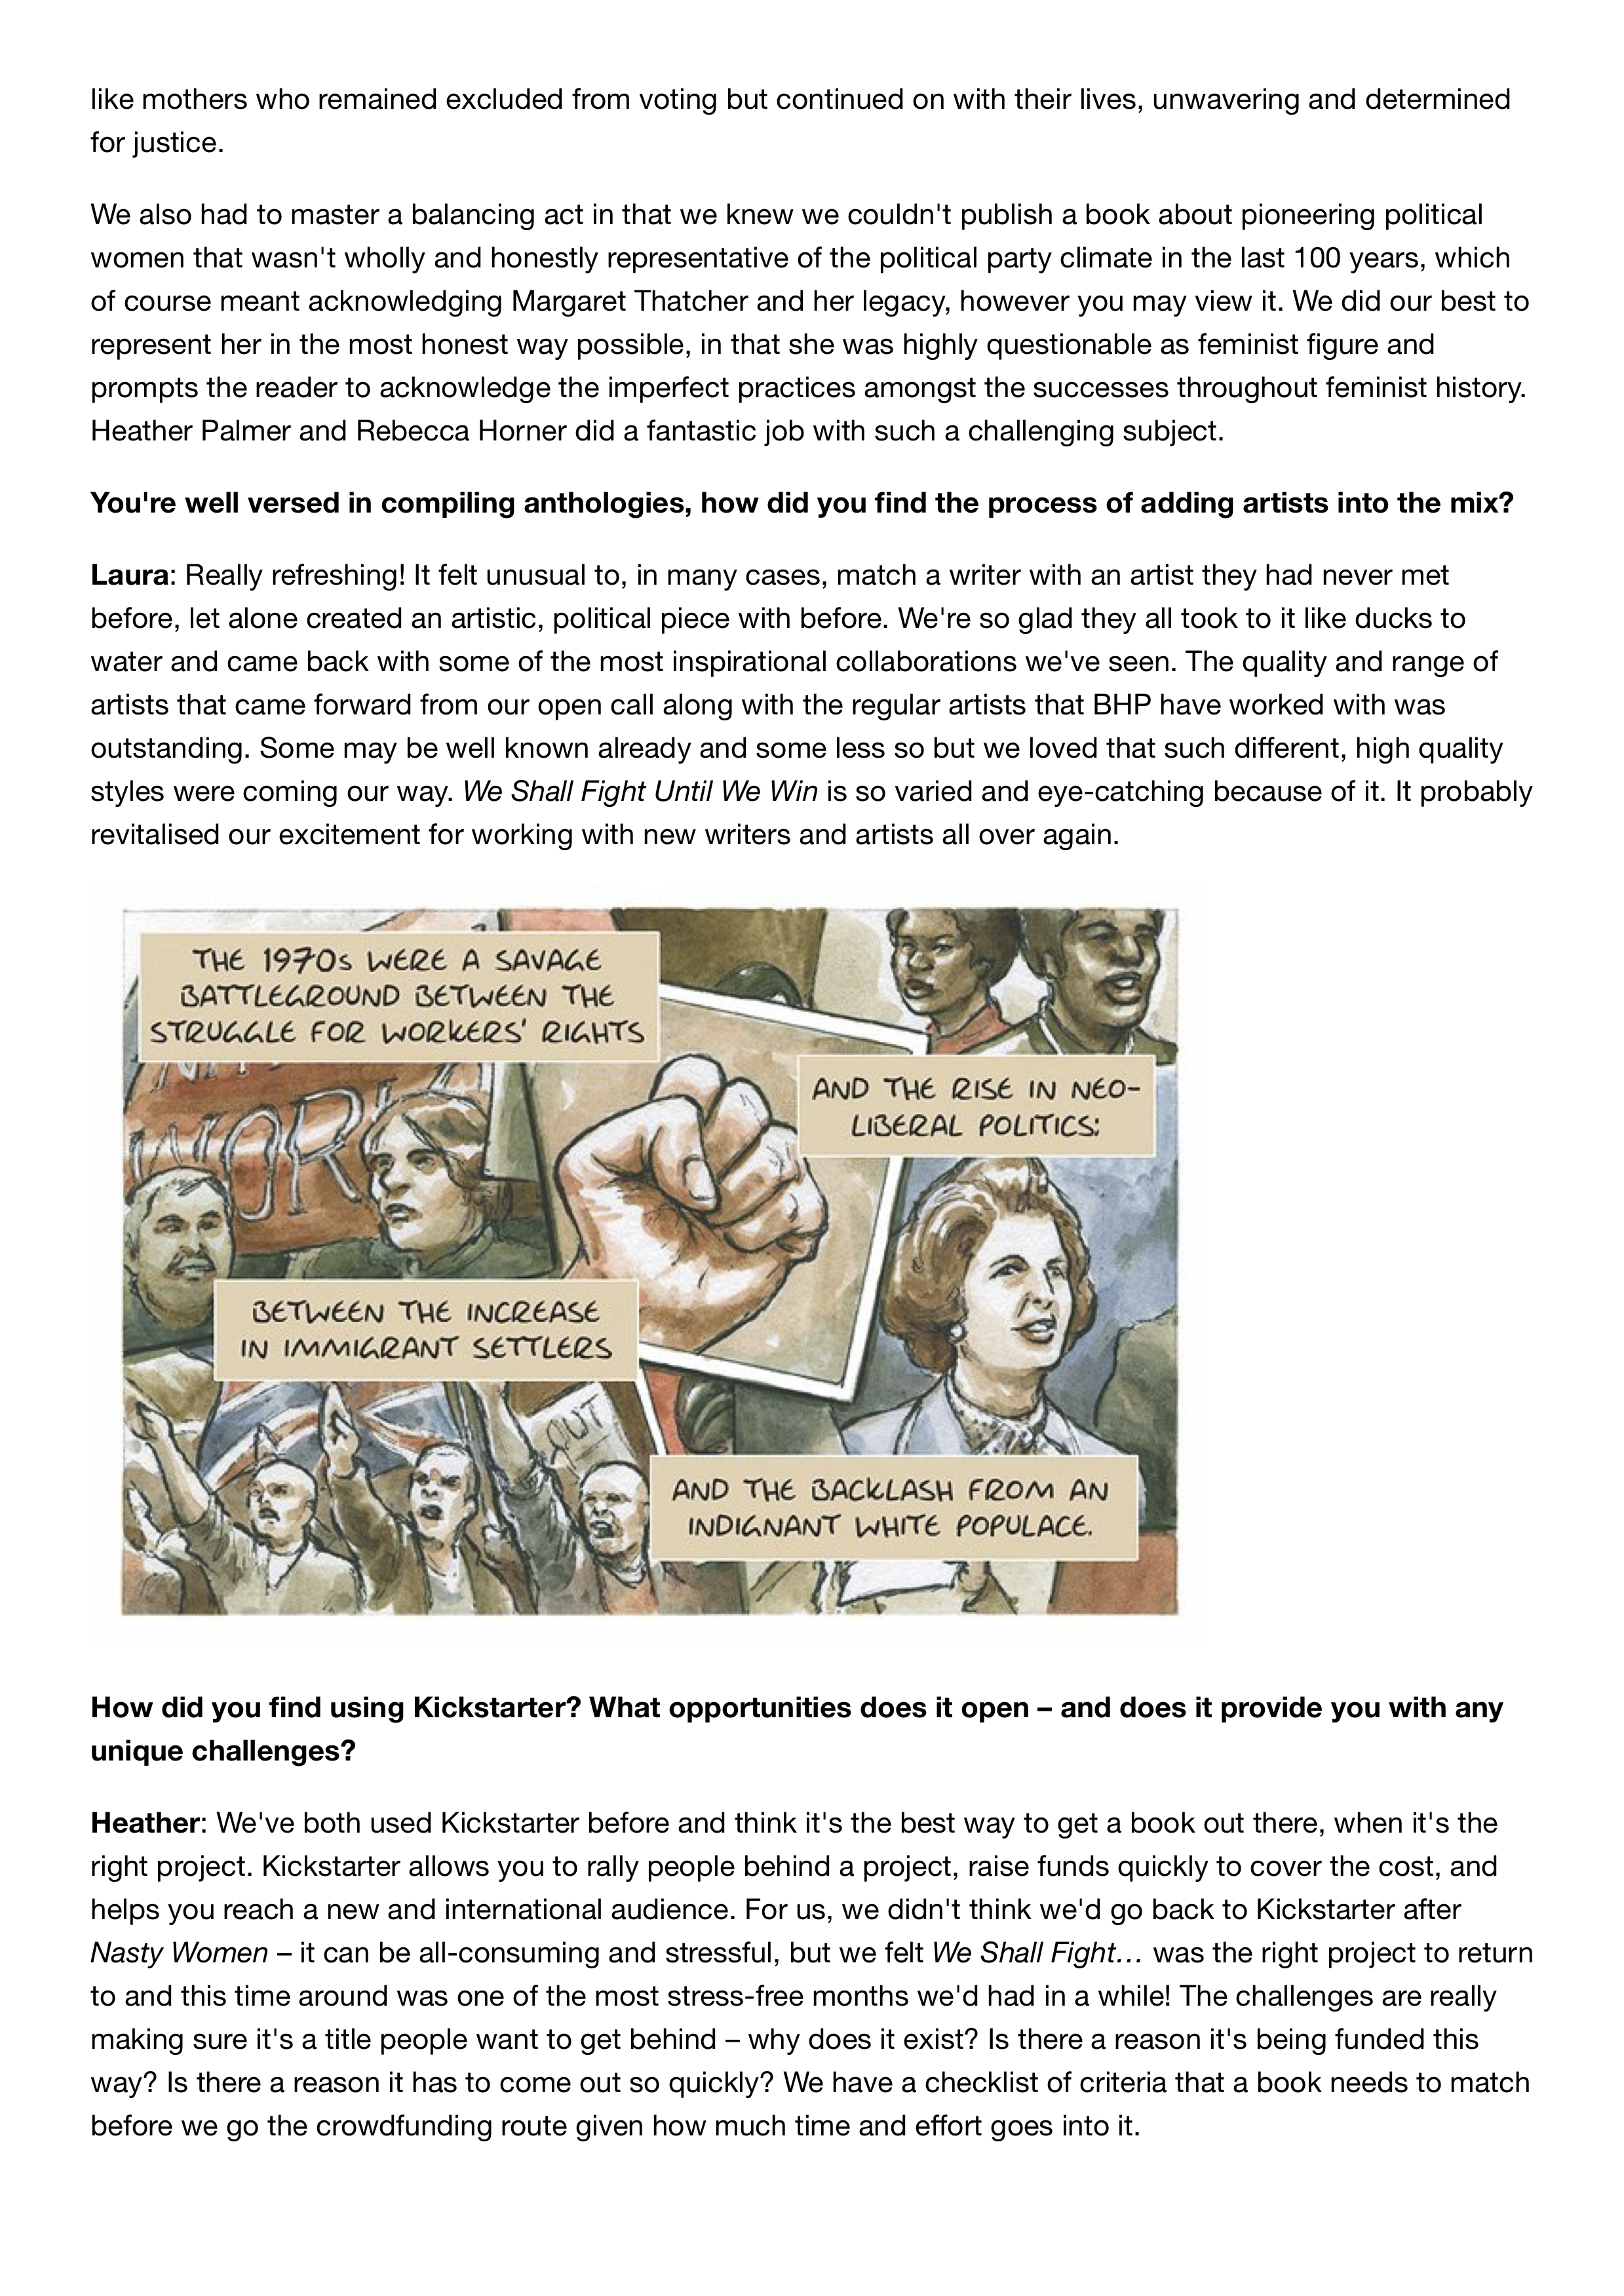 404 Ink and BHP Comics celebrate 100 years of political pioneering women _ The List 3.png